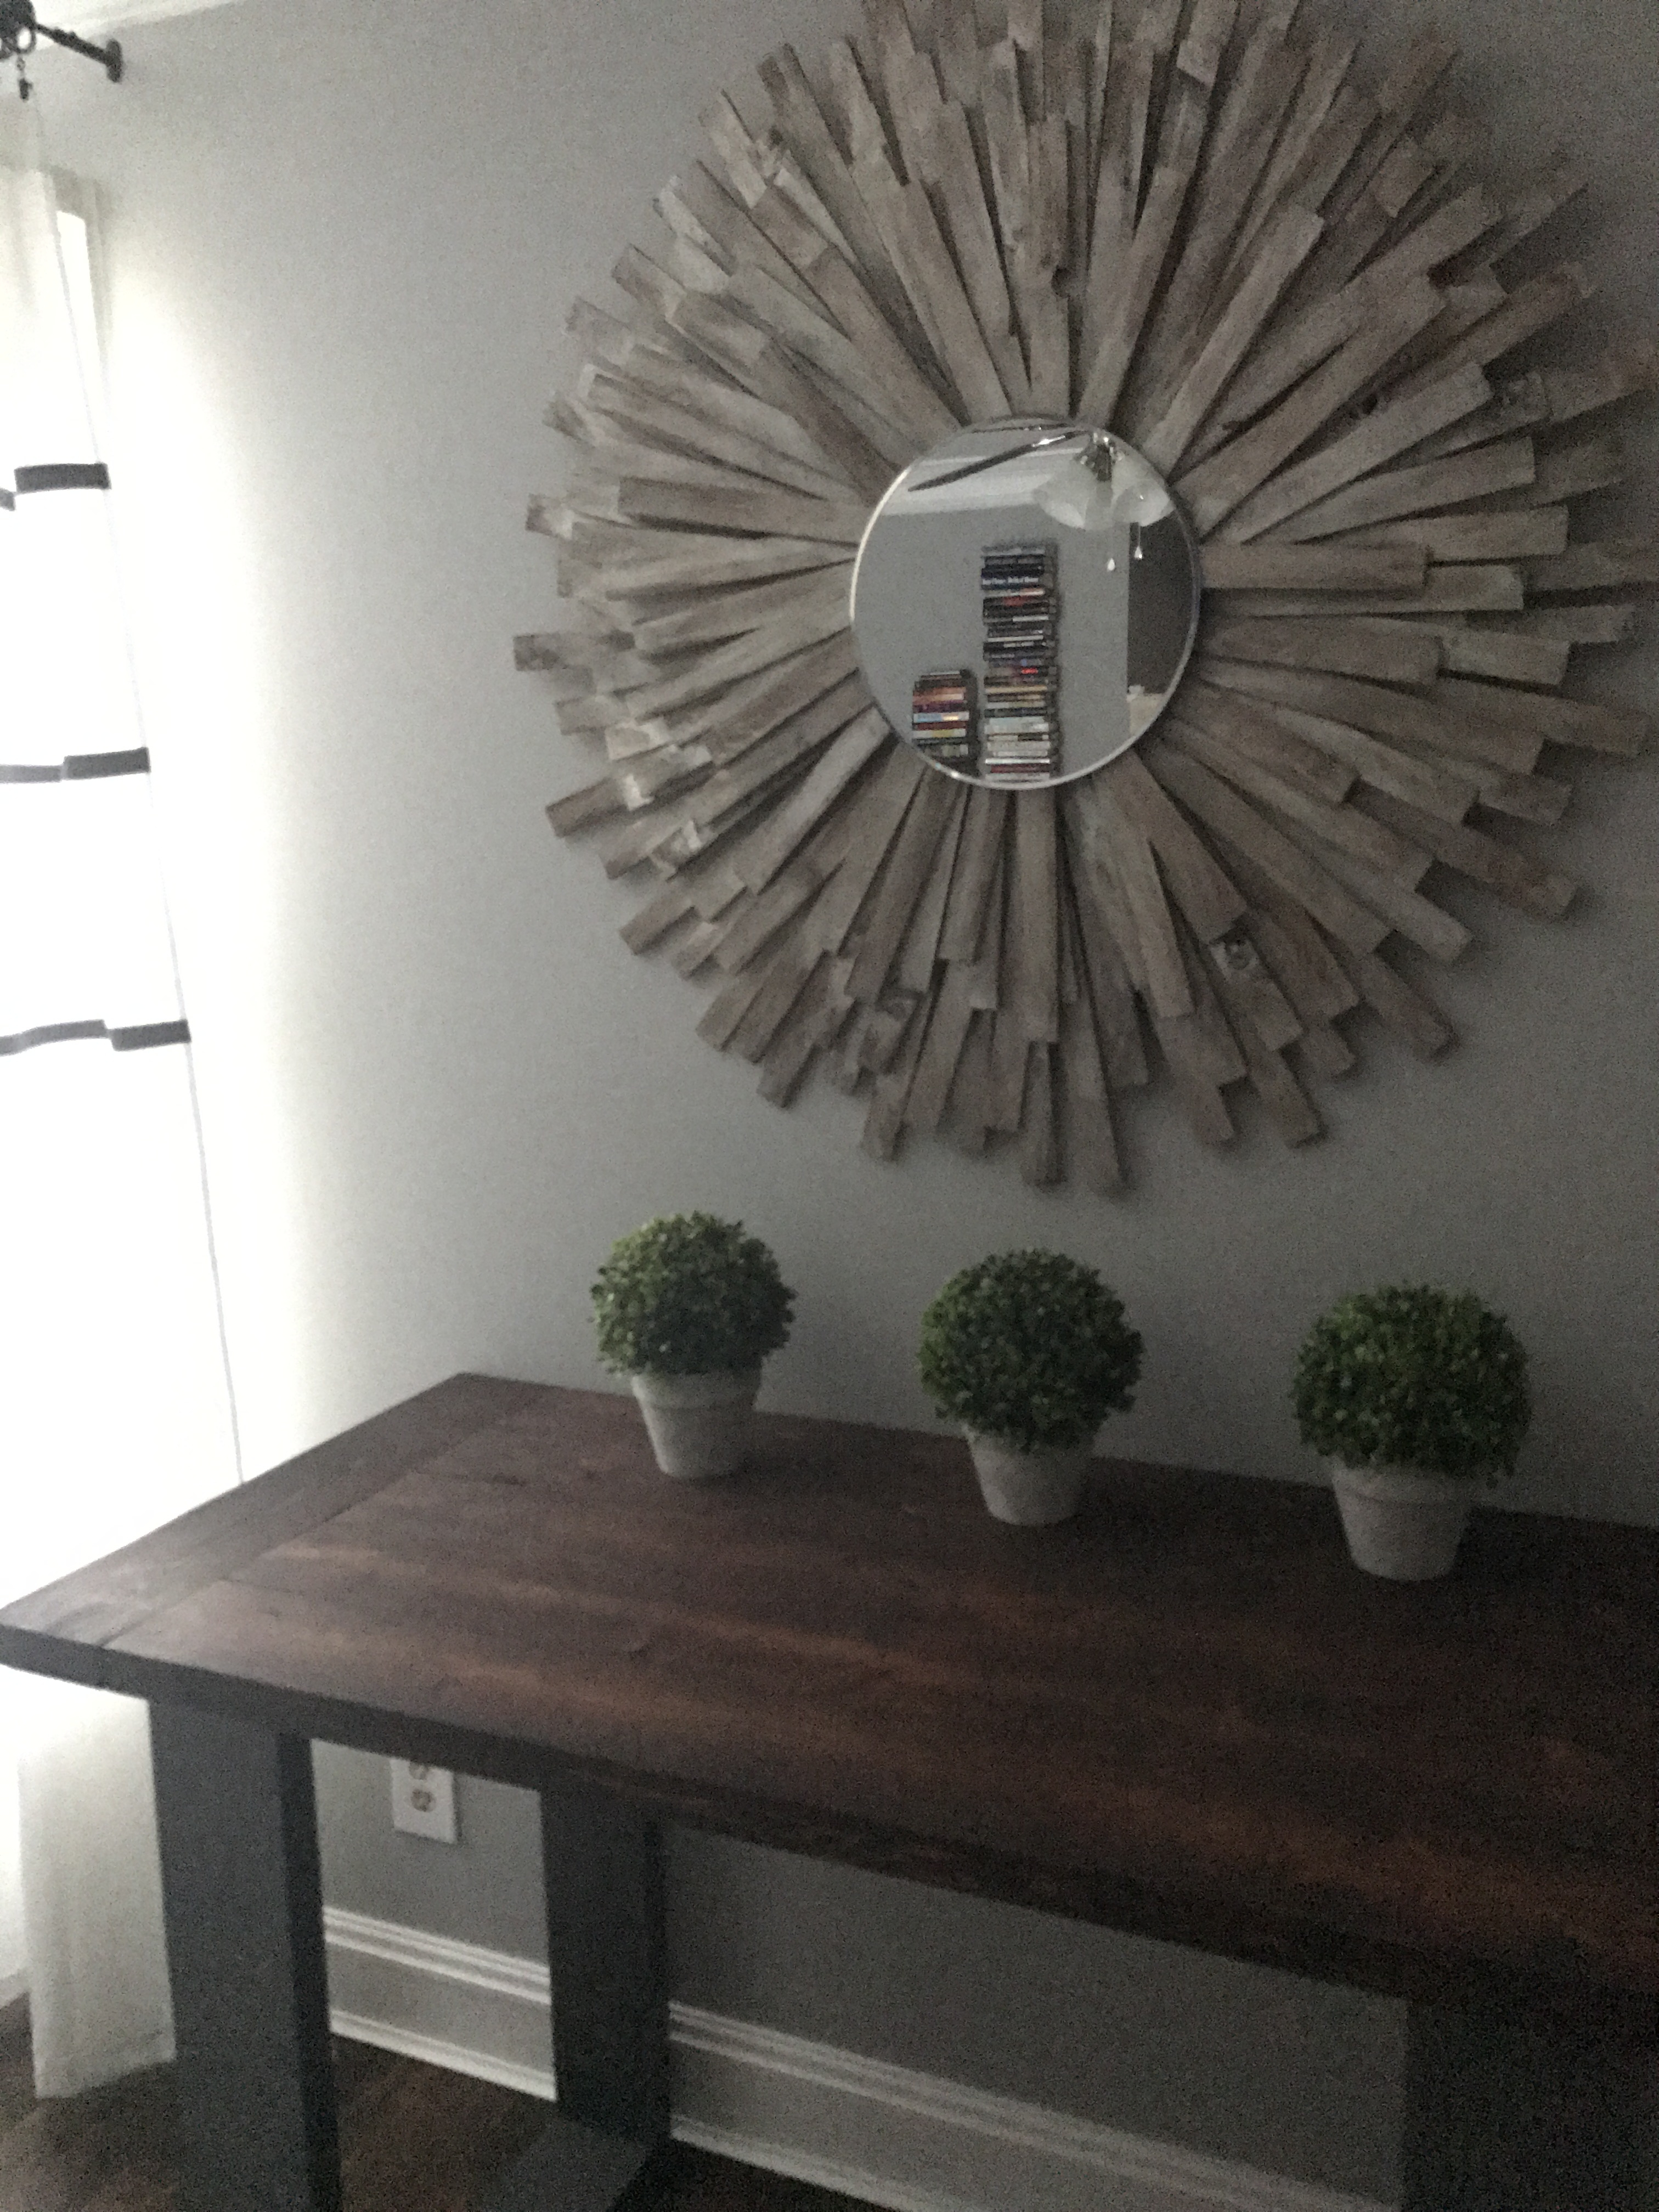 Diy Large Wall Mirror Intended For Latest Sunburst Mirror Diy Cheap And Creative Wall Art With Wood Shims (View 14 of 20)